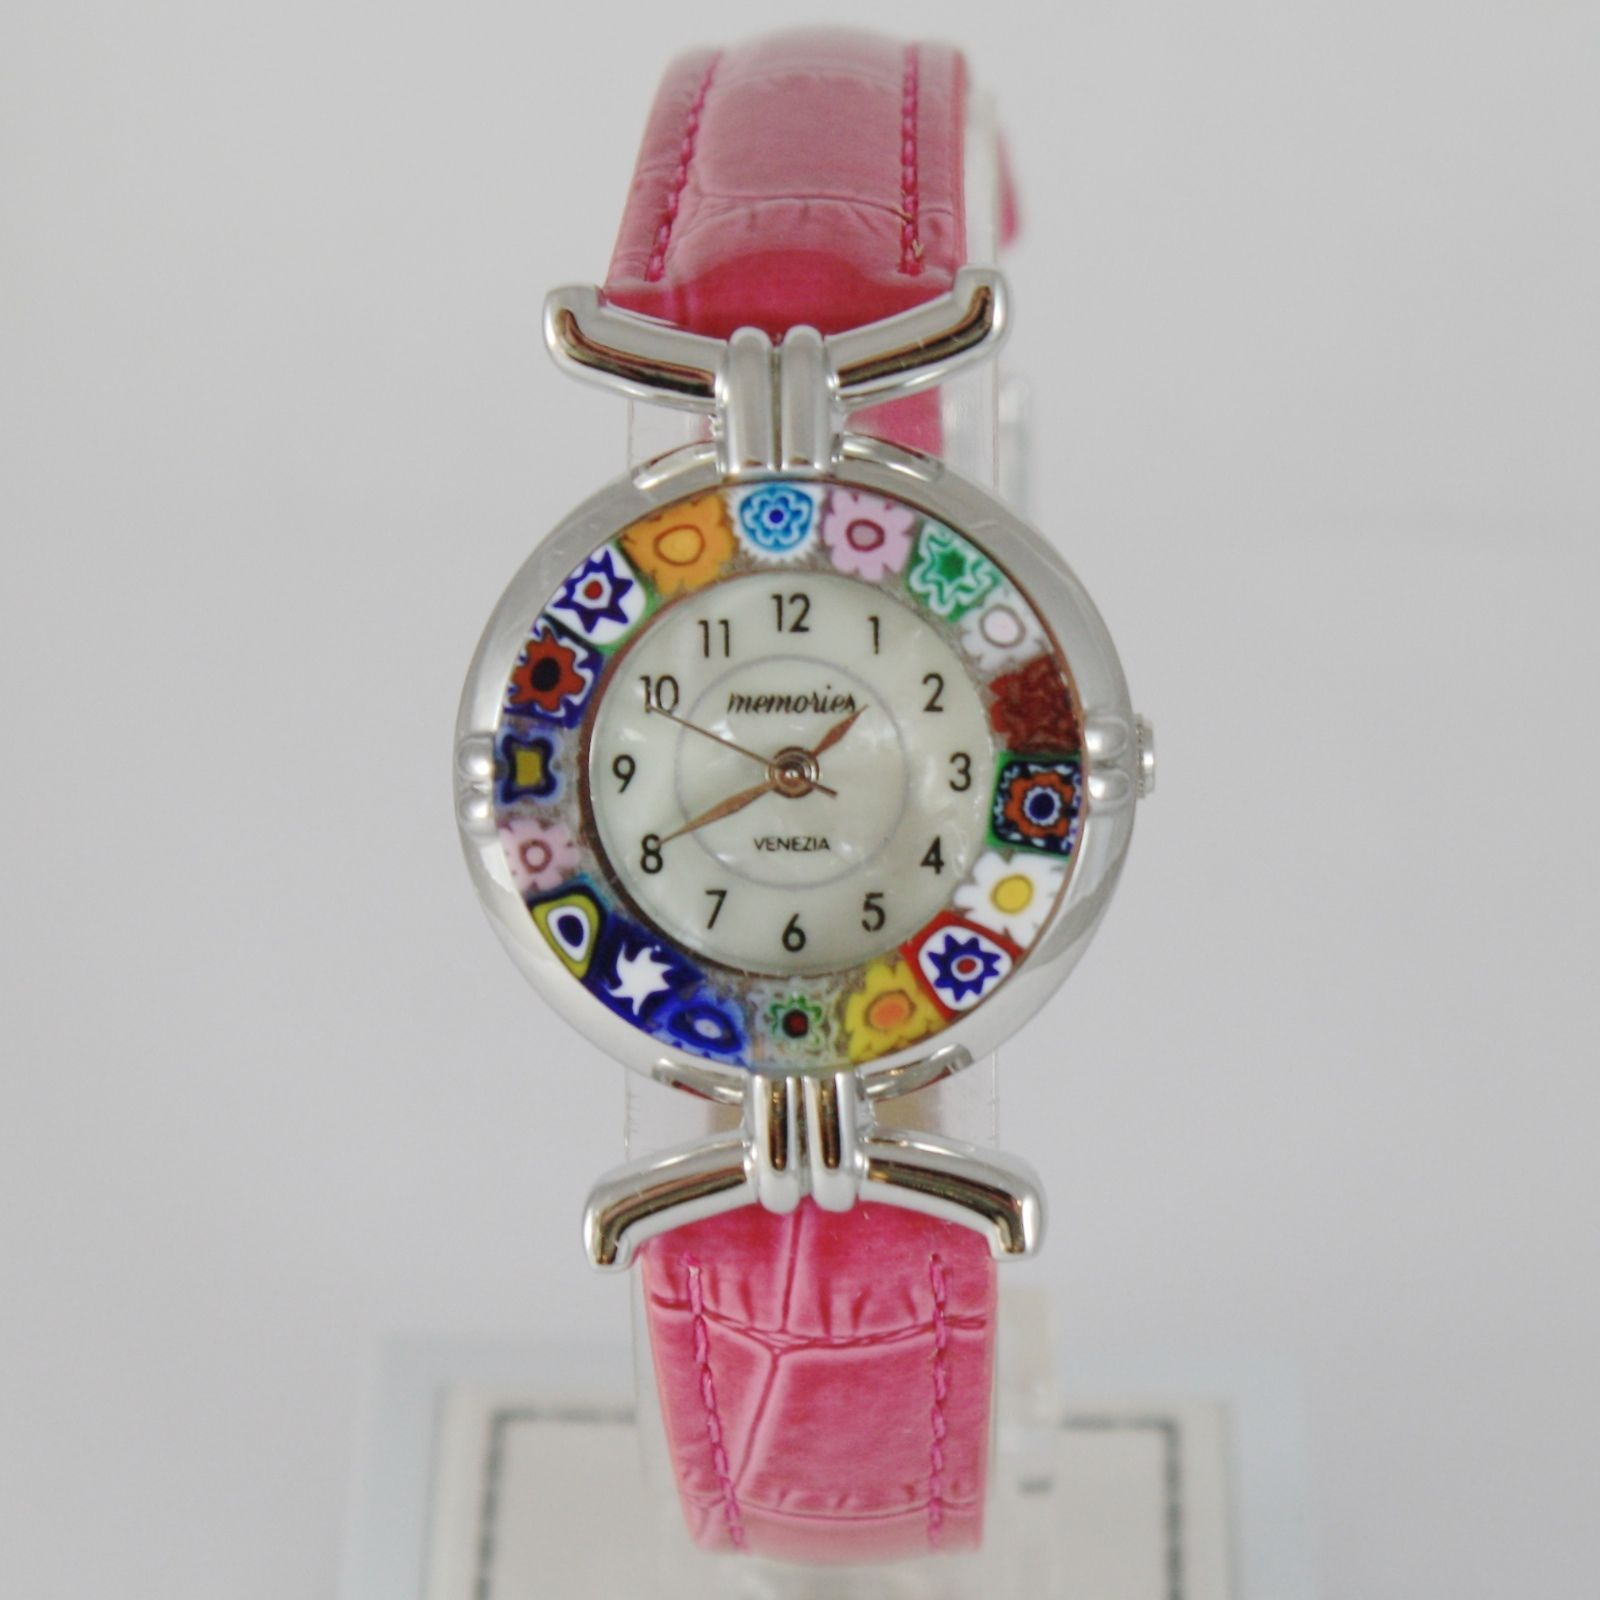 ANTICA MURRINA VENEZIA QUARTZ WATCH 27 MM, FUCHSIA, MURANO FLOWER GLASS